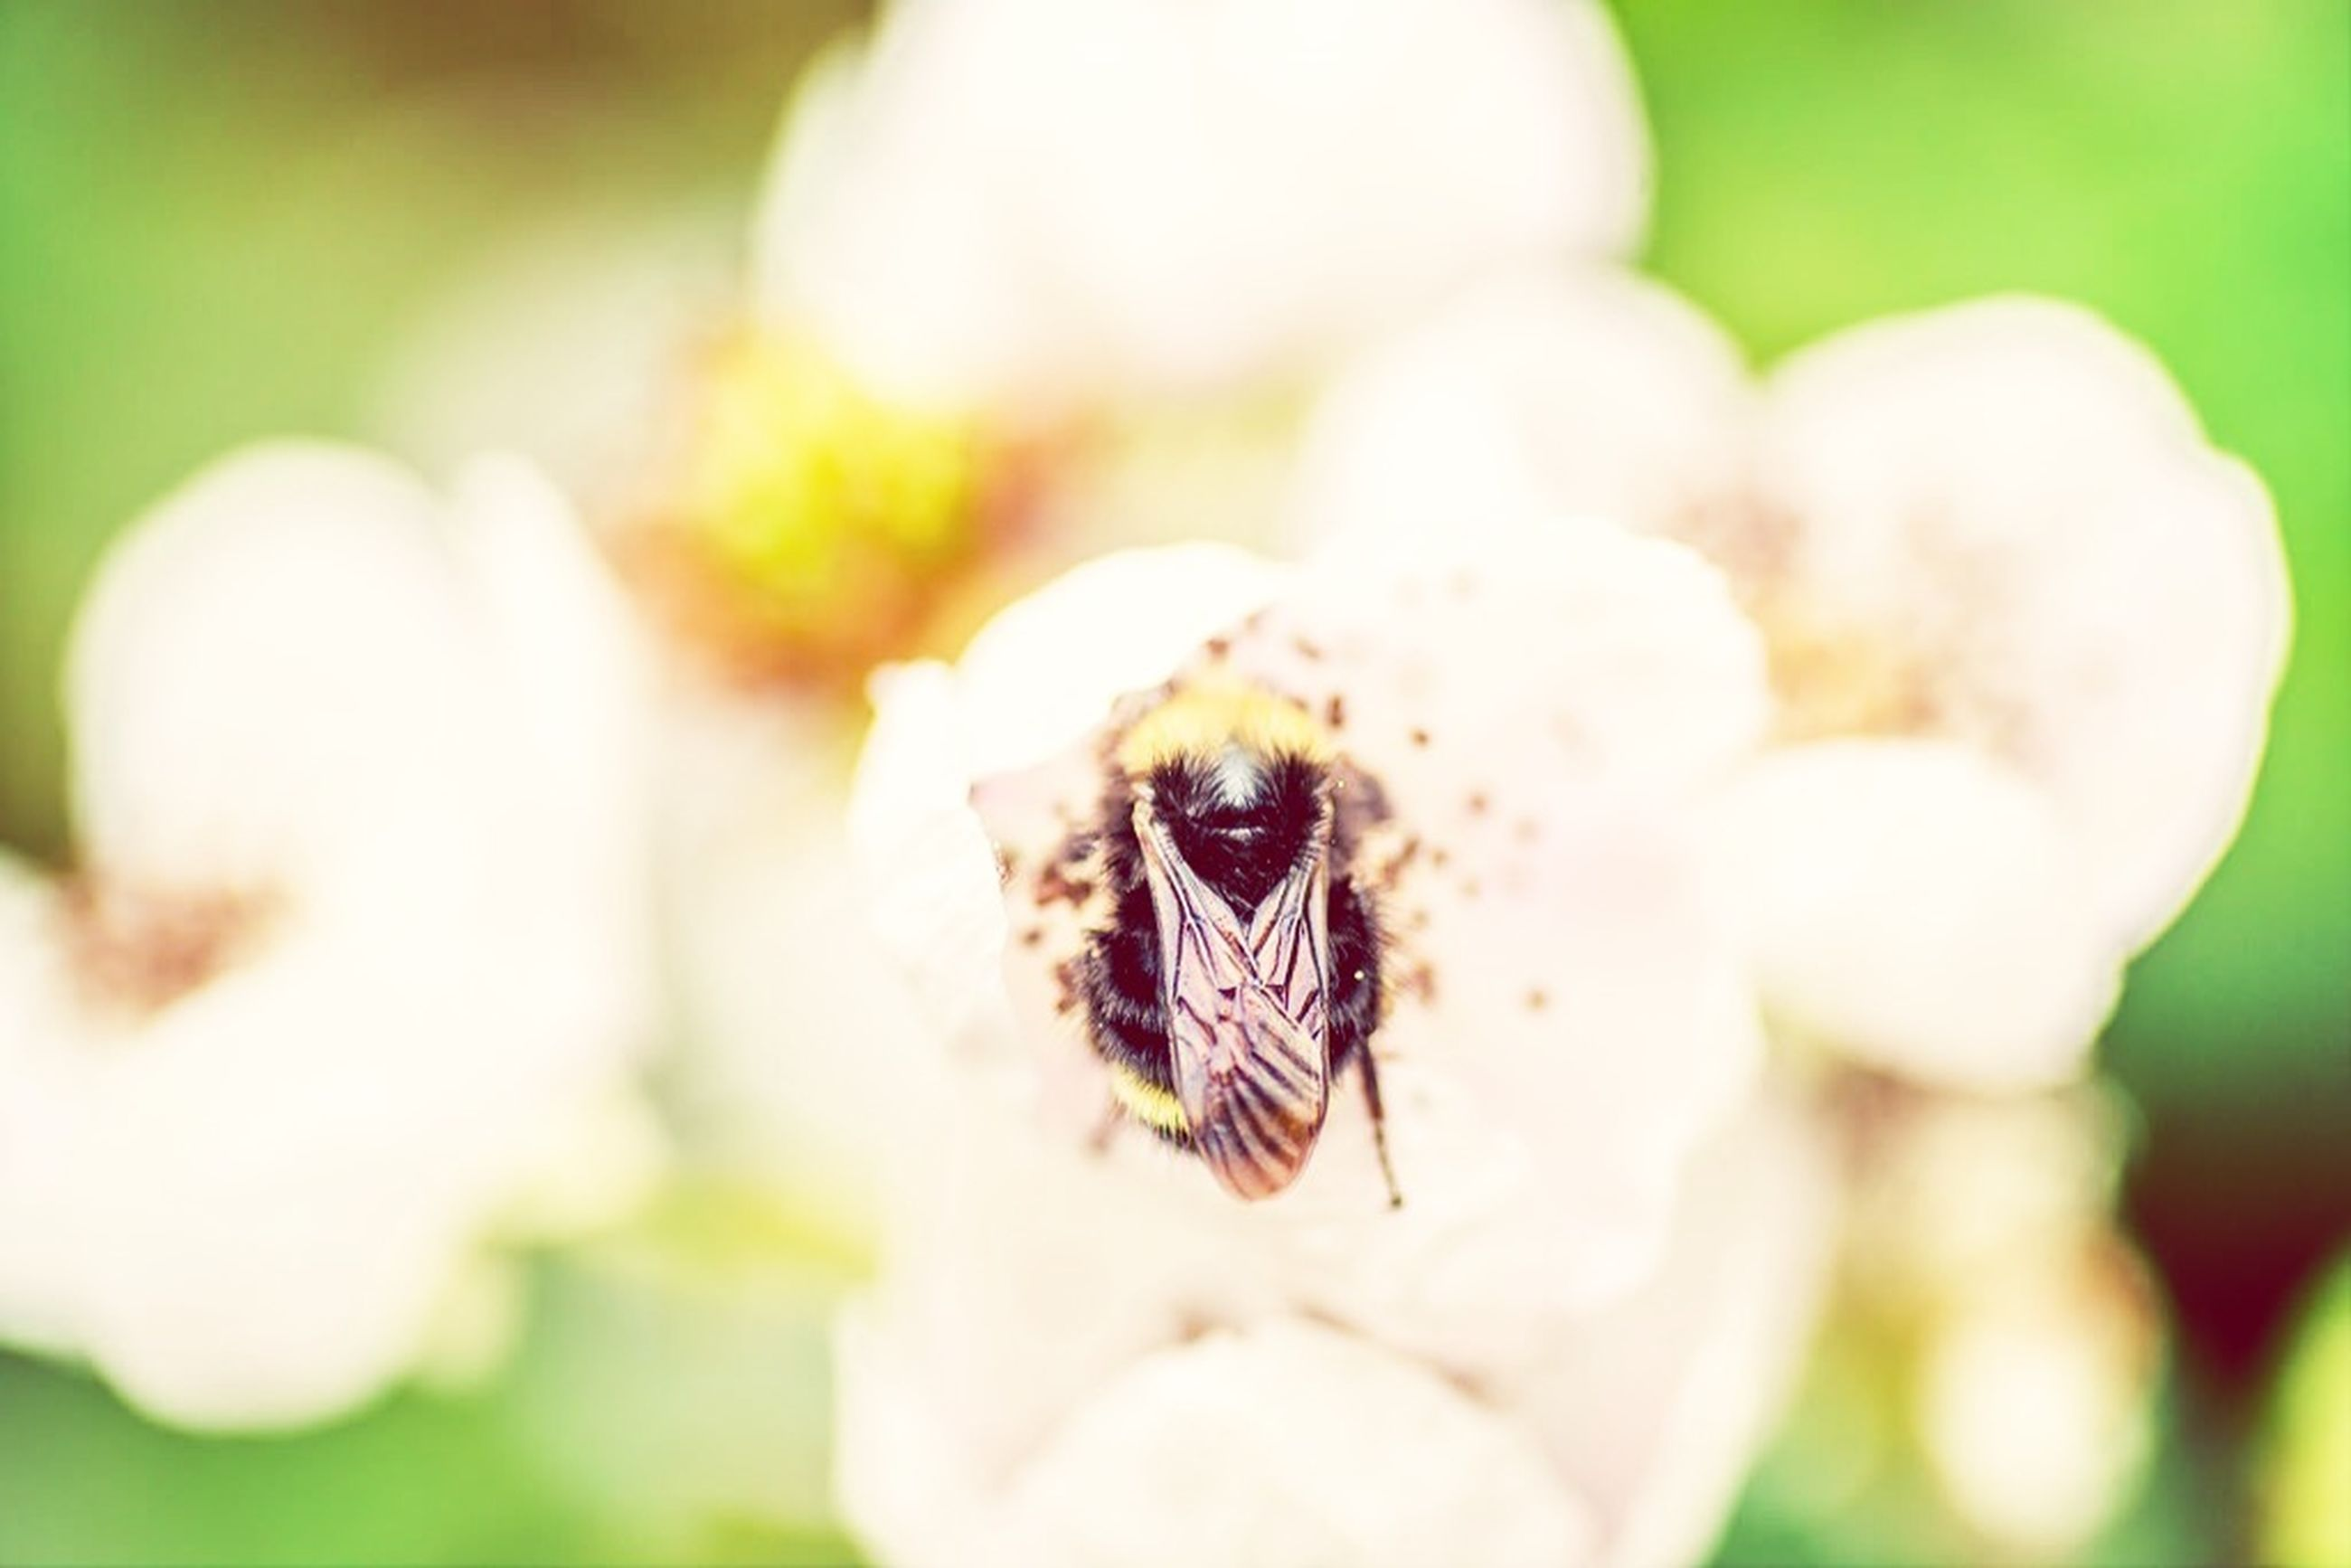 close-up, insect, flower, focus on foreground, one animal, animal themes, fragility, freshness, white color, selective focus, nature, wildlife, animals in the wild, growth, beauty in nature, petal, flower head, day, single flower, outdoors